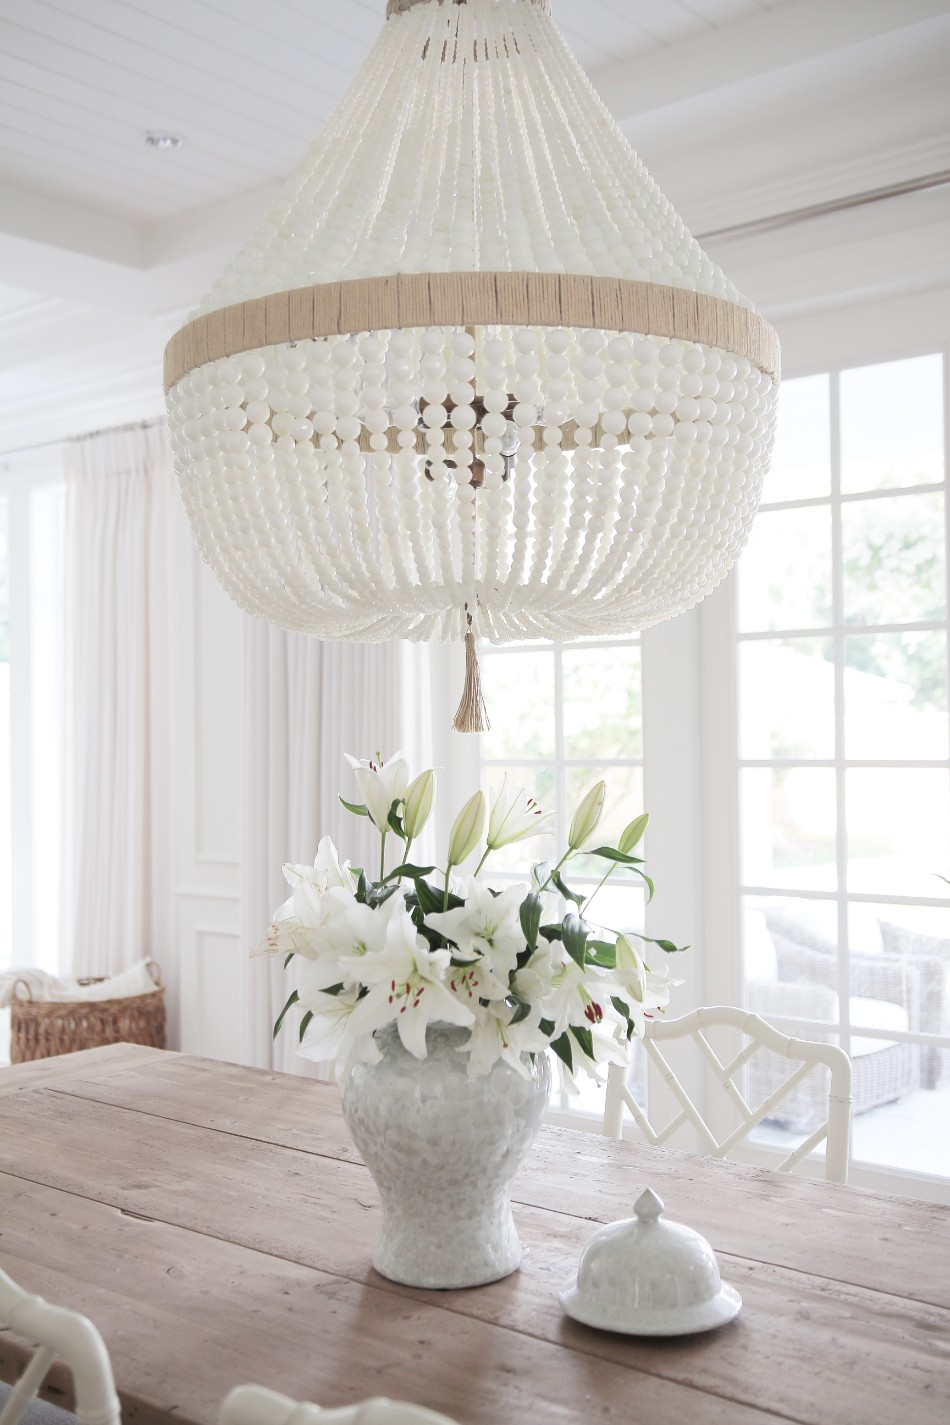 amazing chandelier Amazing Chandelier Give Light To Your Dining Room With These Amazing Chandeliers IMG 3698